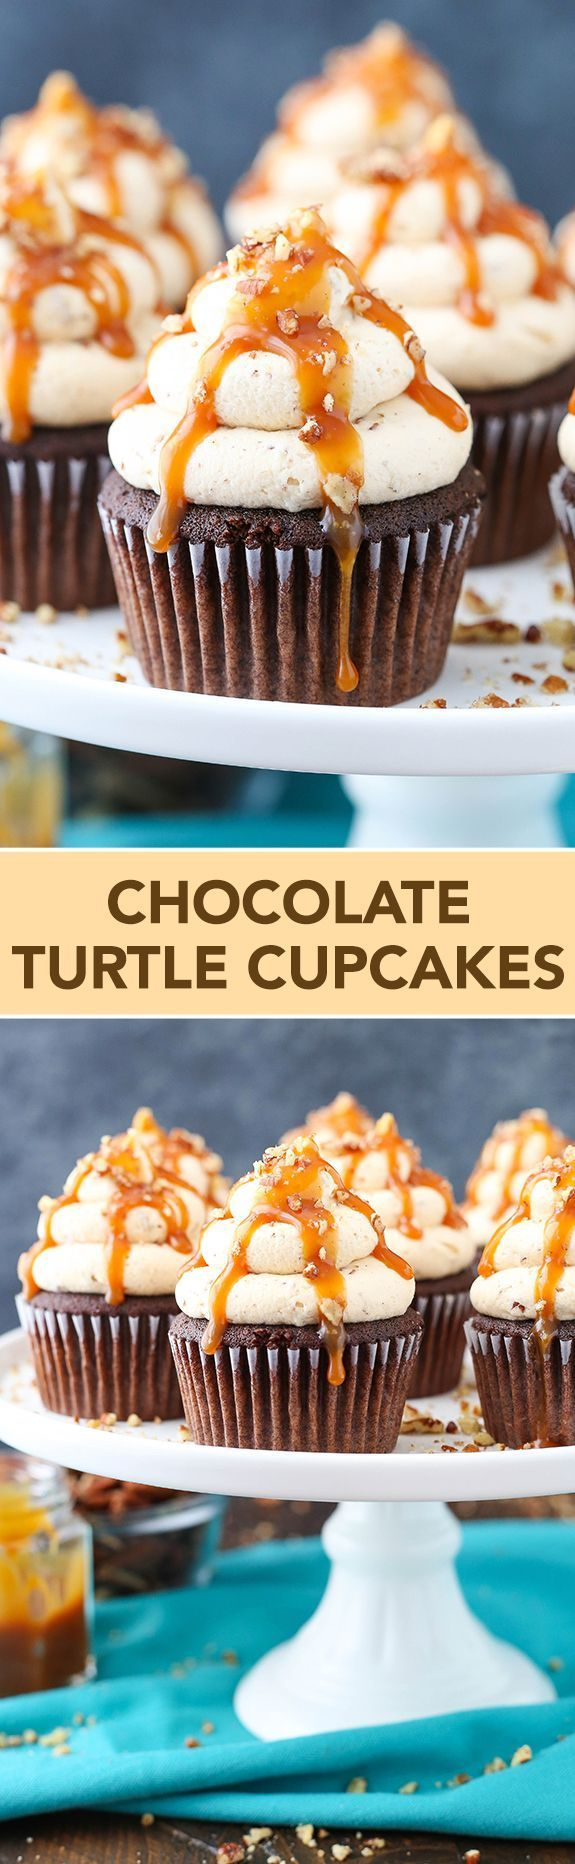 Chocolate Turtle Cupcakes - chocolate cupcakes topped with caramel pecan frosting, caramel drizzle and chopped pecans | Cupcakes recipes